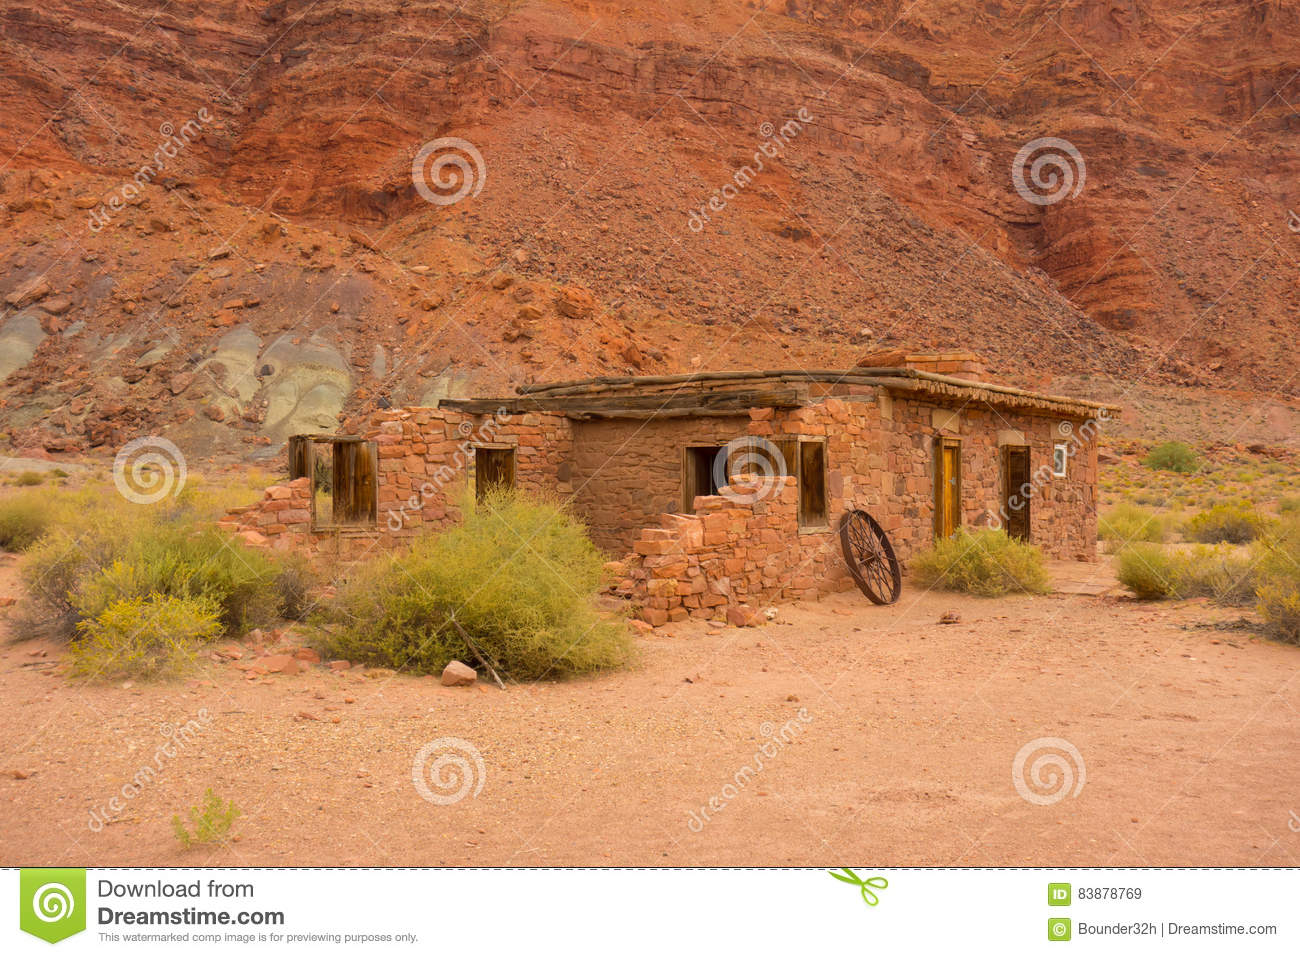 An old house in the desert stock image  Image of eroding - 83878769